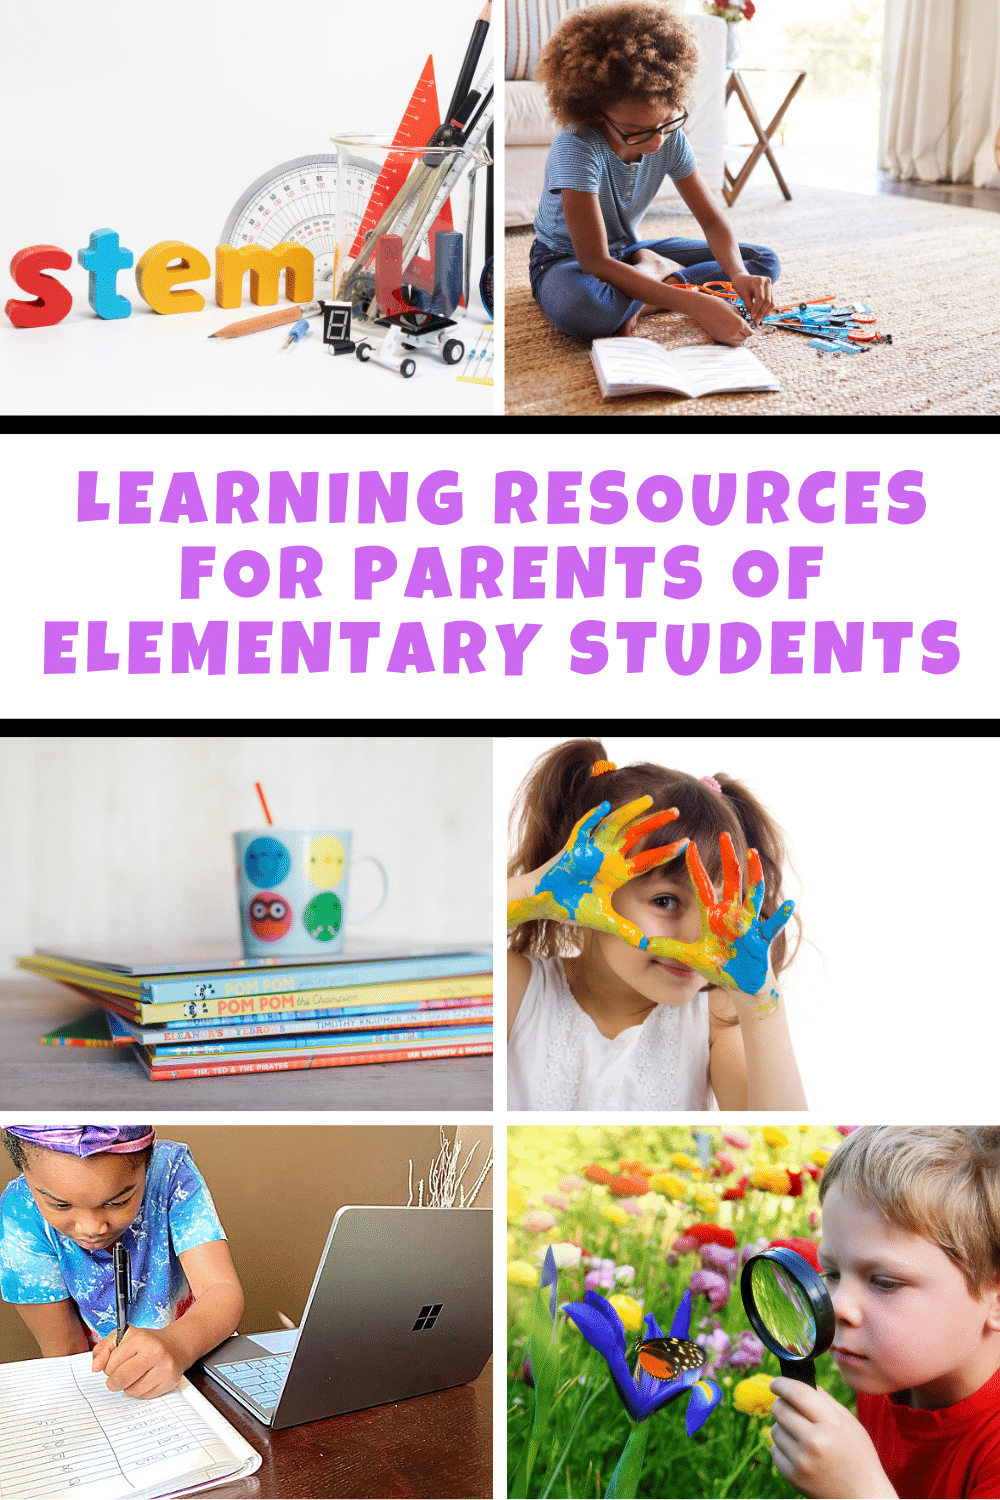 A comprehensive list of learning resources for parents of school-aged children to reference for fun educational activities at home